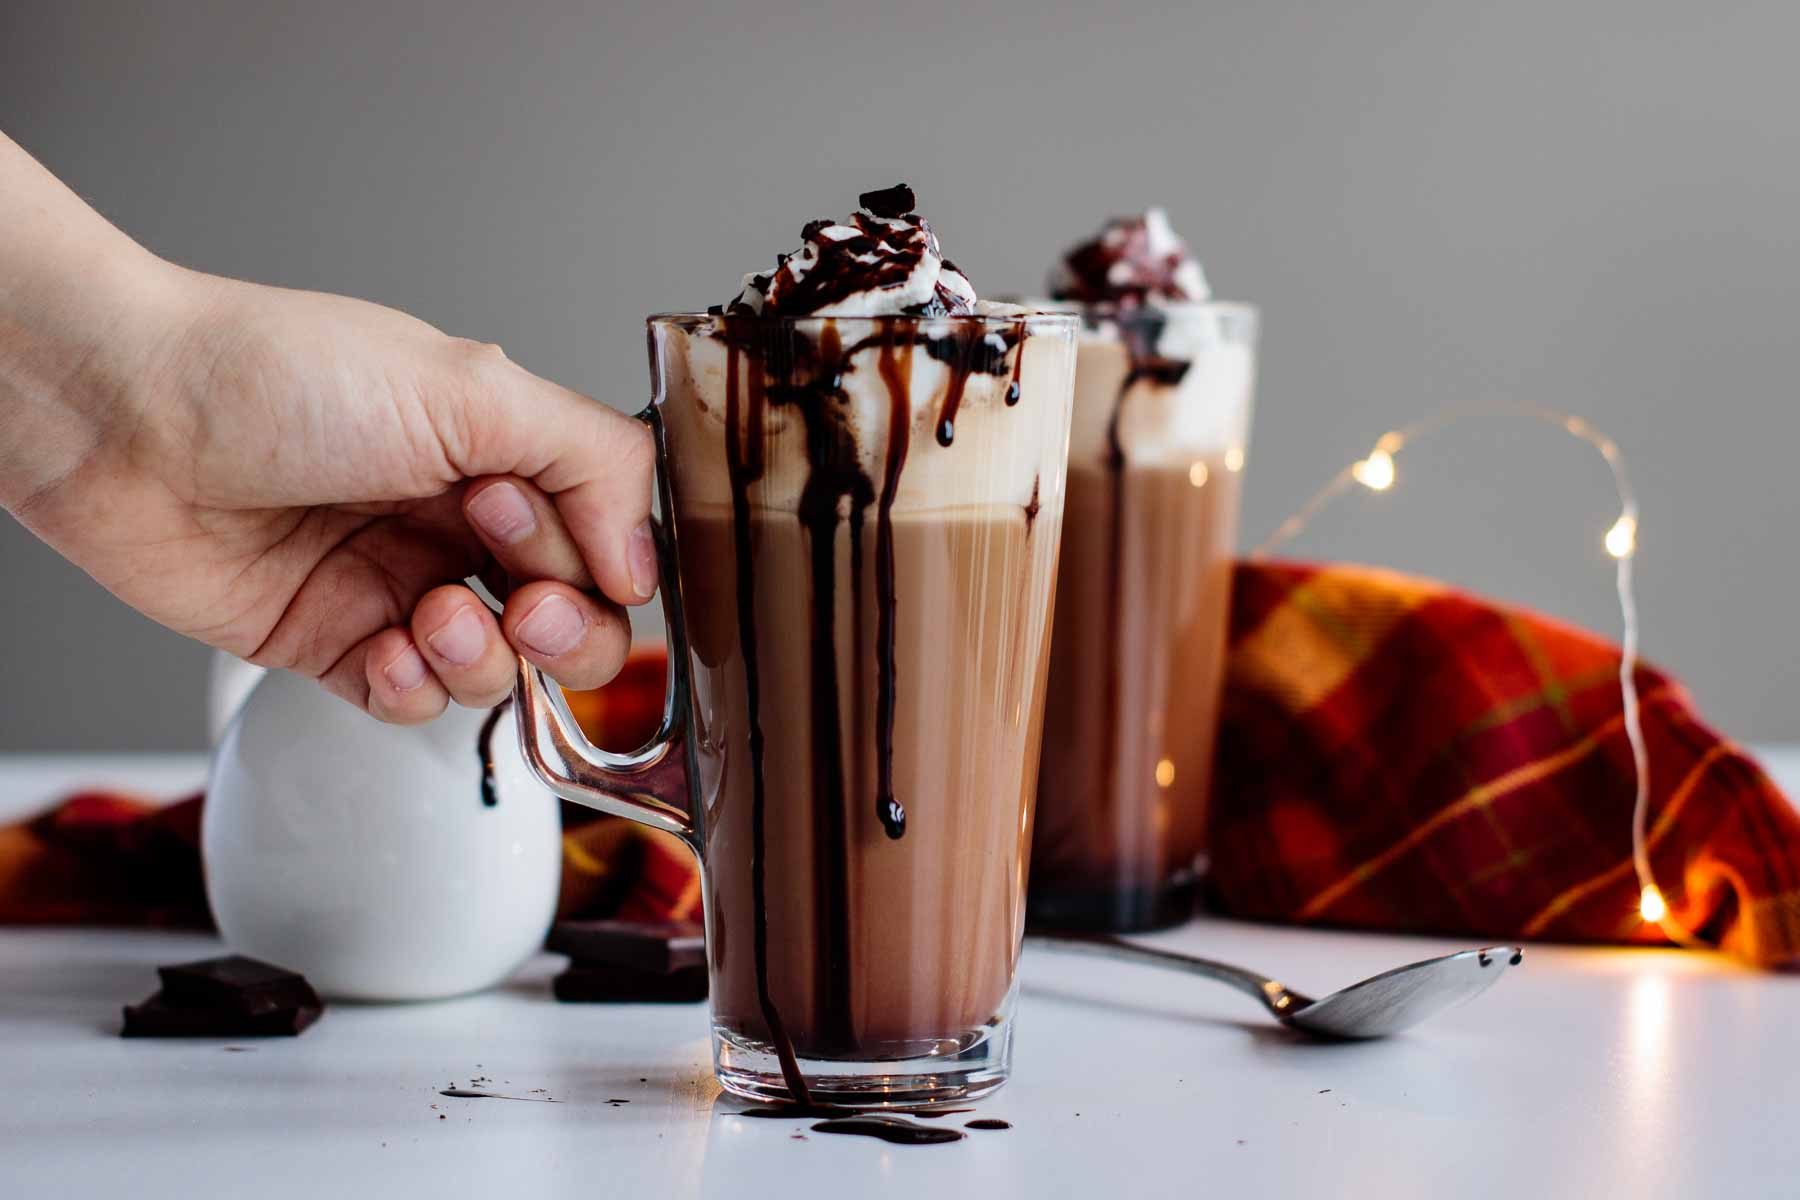 drinks ready, over a white table, with mocha sauce and lights in the background, and a hand ready to grab the closer glass cup